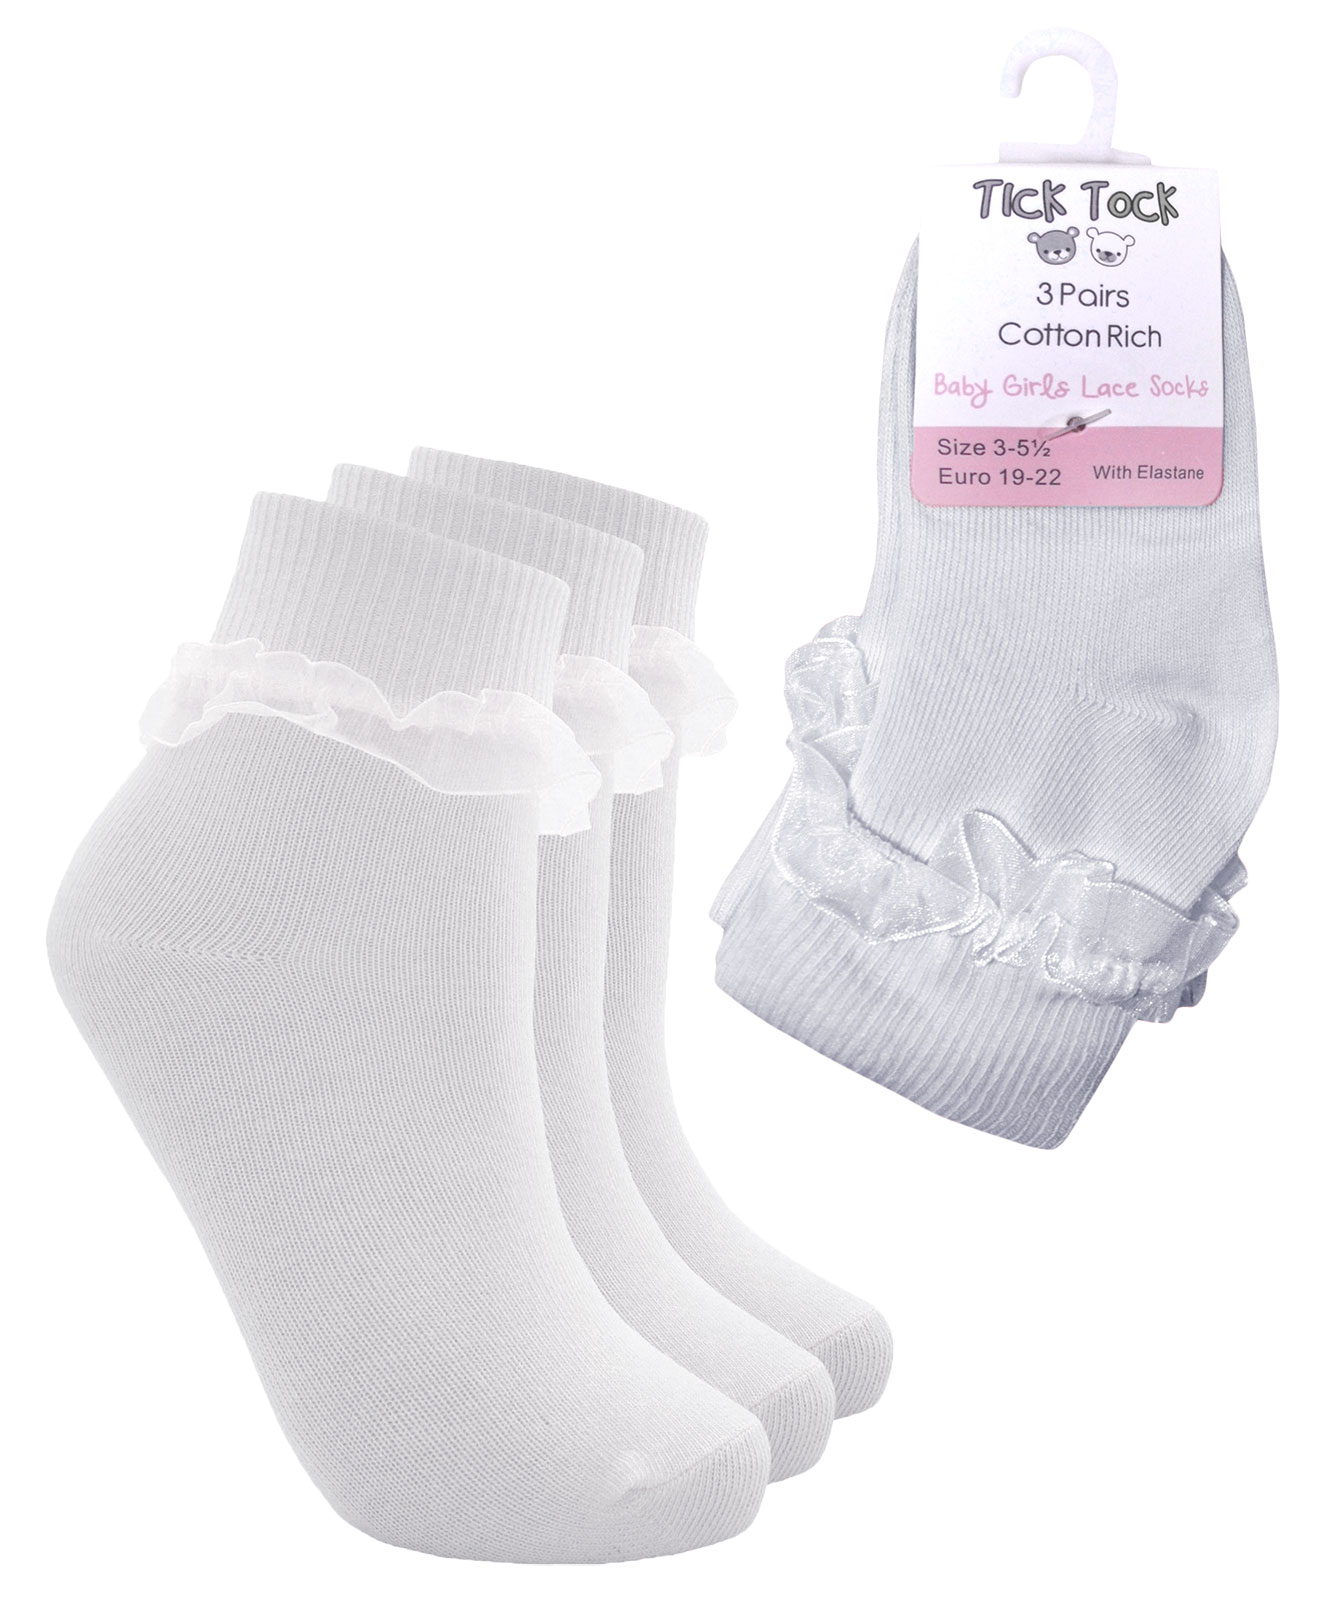 3 Pairs Girls School Socks Frilly Lace Ankle Socks Baby Girls Cotton Sock 3 PACK